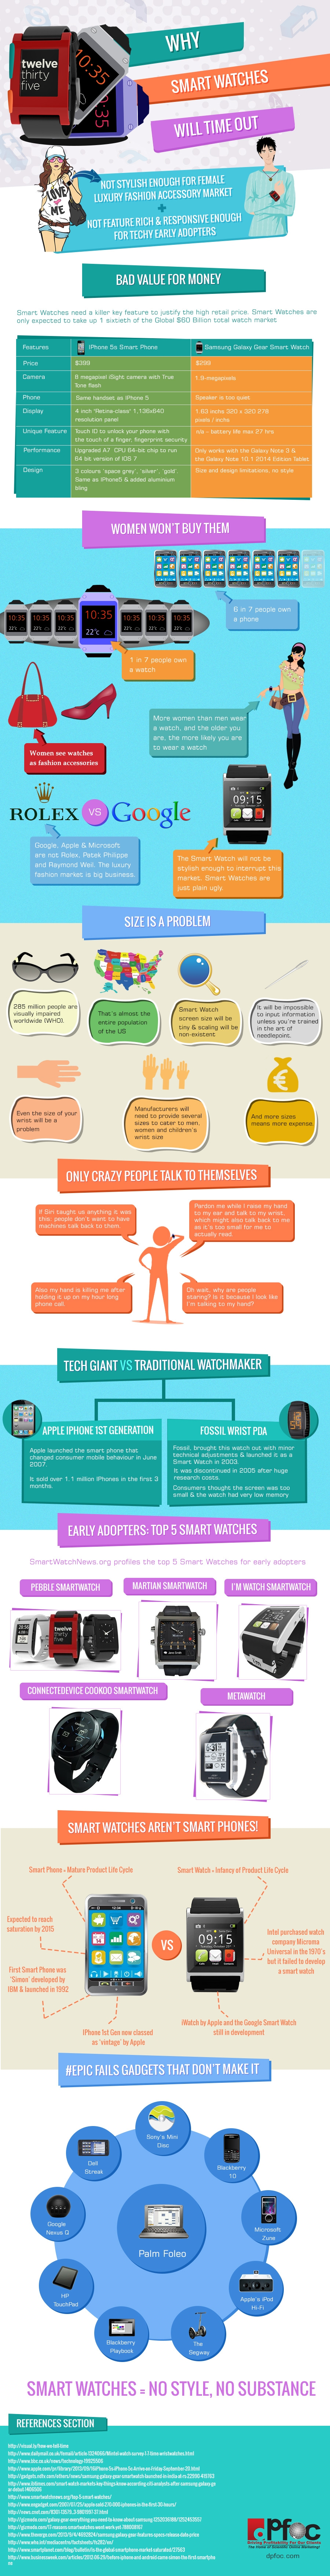 Why Smart Watches Will Time Out Infographic DK